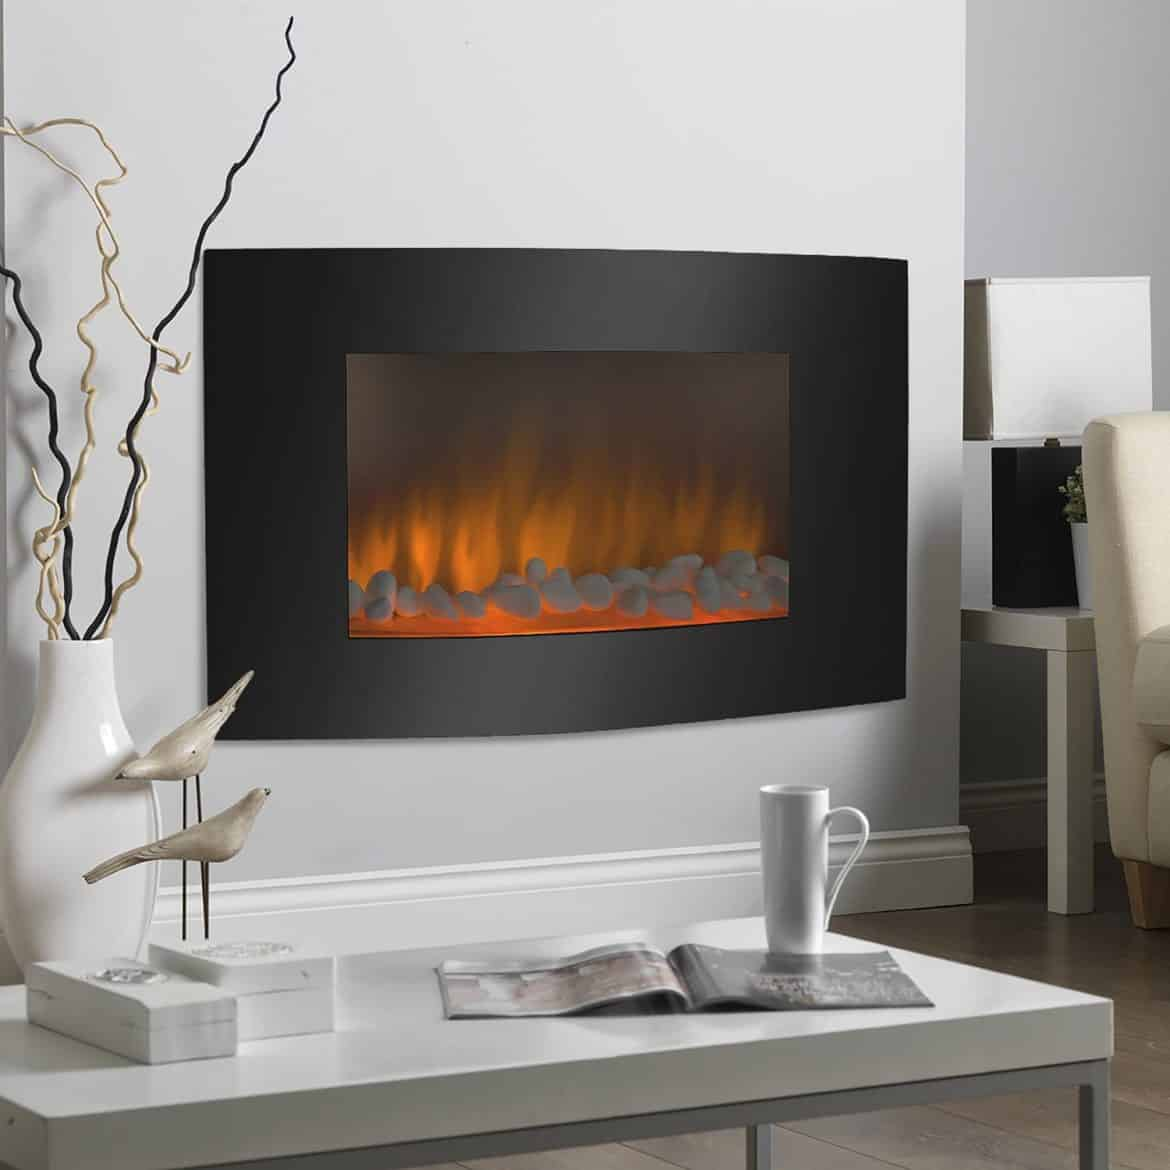 Best Choice Products Large 1500w Heat Adjule Electric Wall Mount Modern Fireplaces